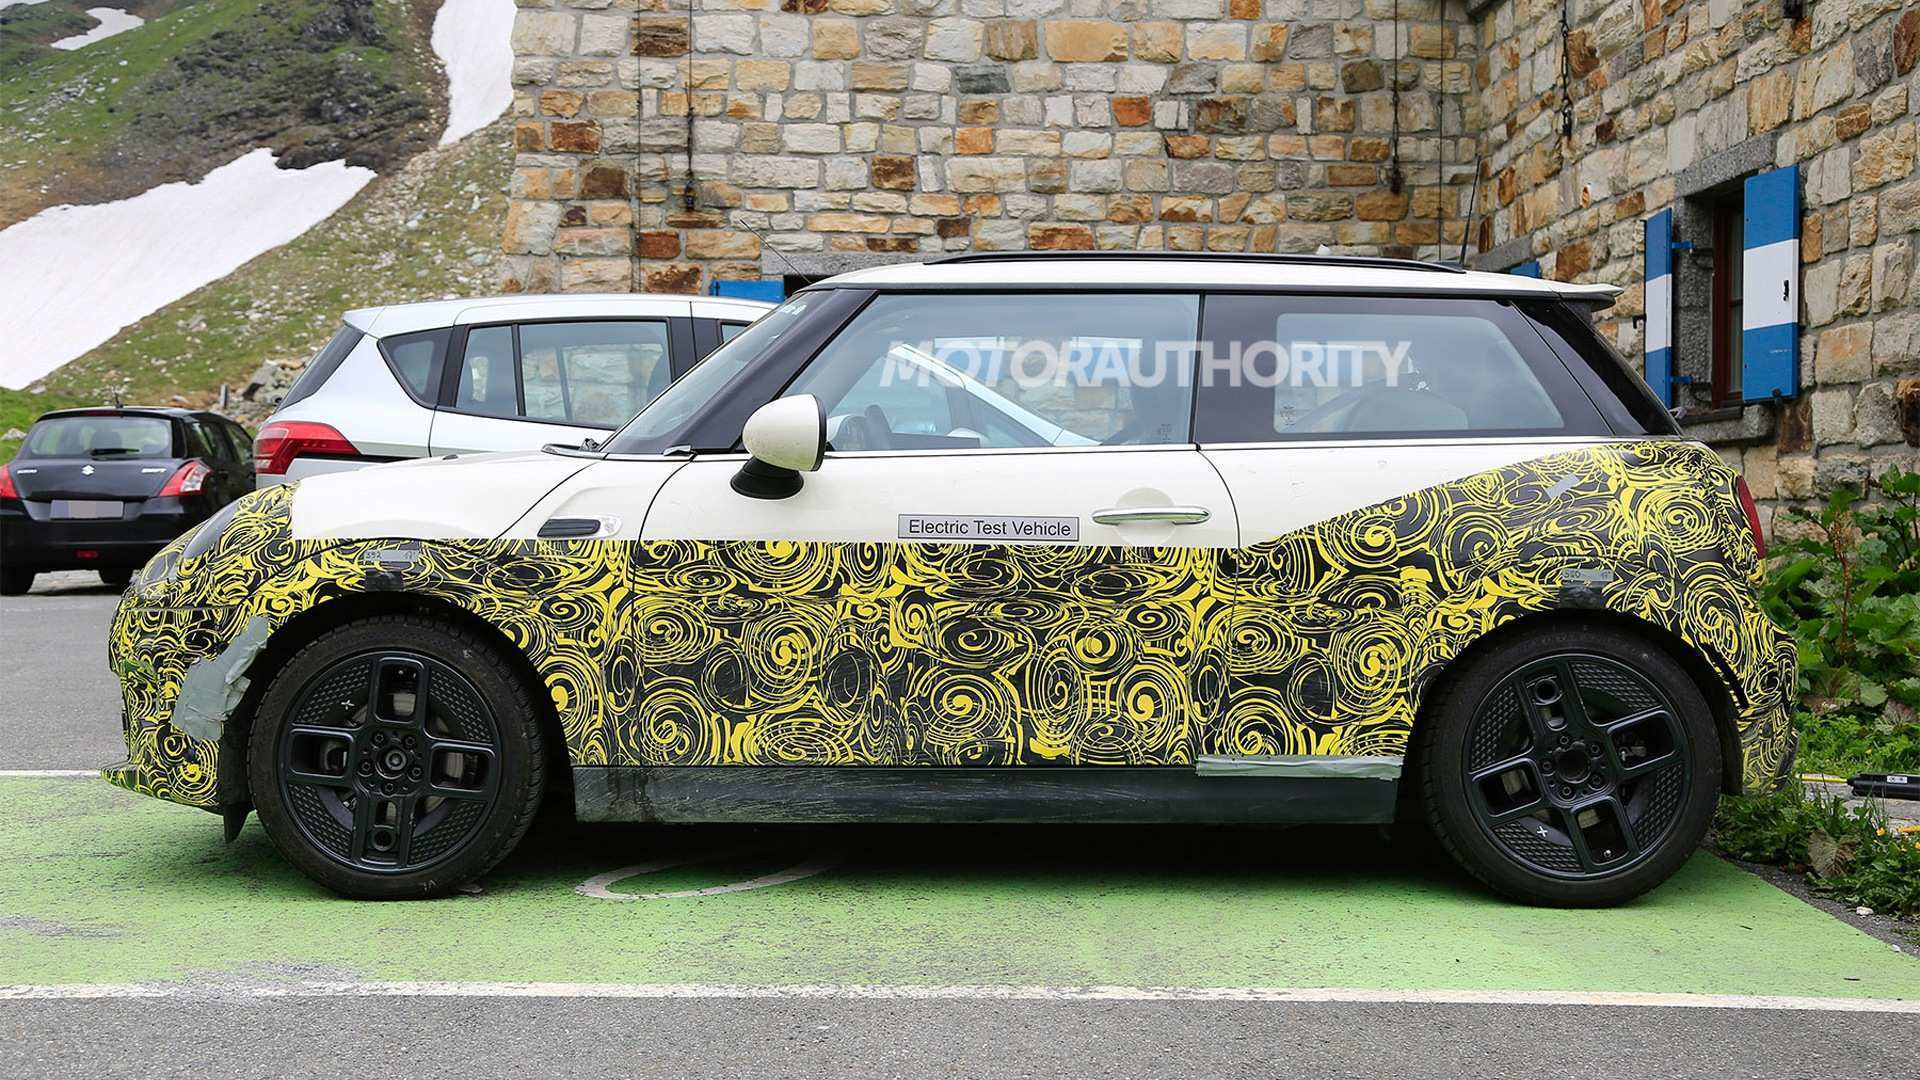 41 New 2020 Spy Shots Mini Countryman First Drive